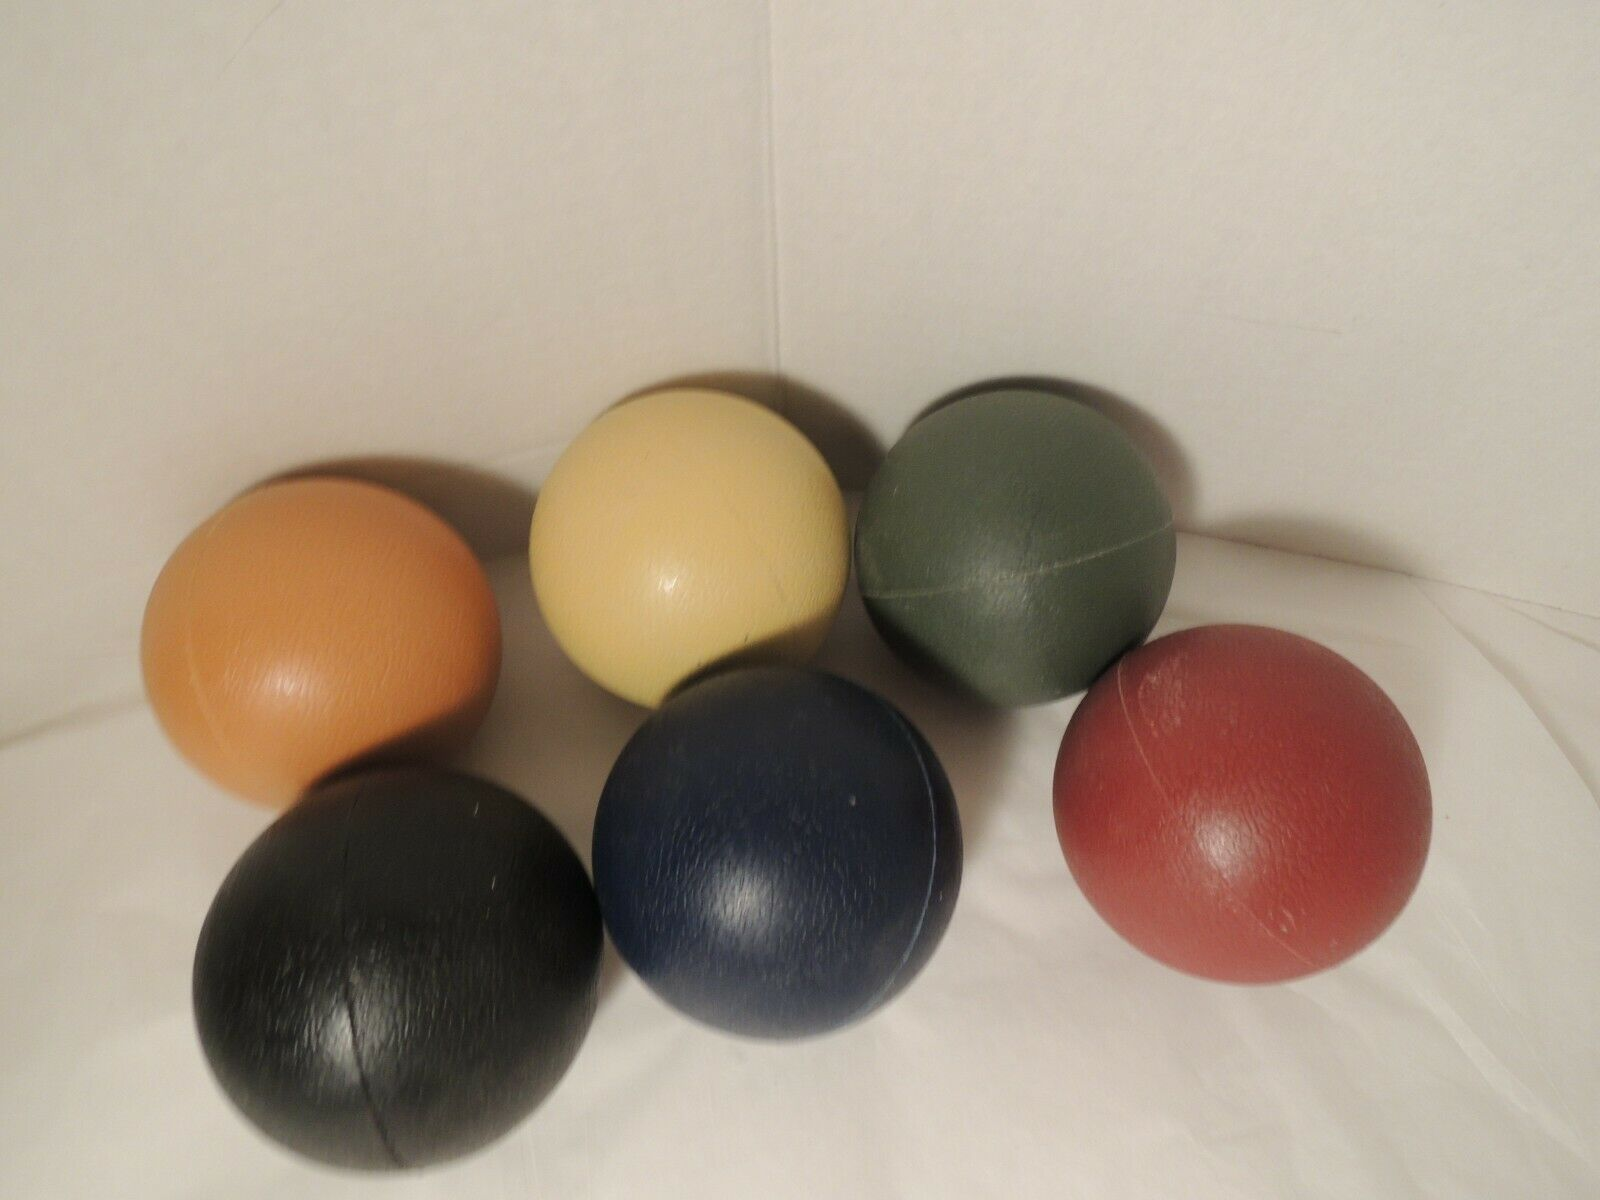 Replacement Set of 6 Croquet Balls Resin Heavy Plastic 3 Inc